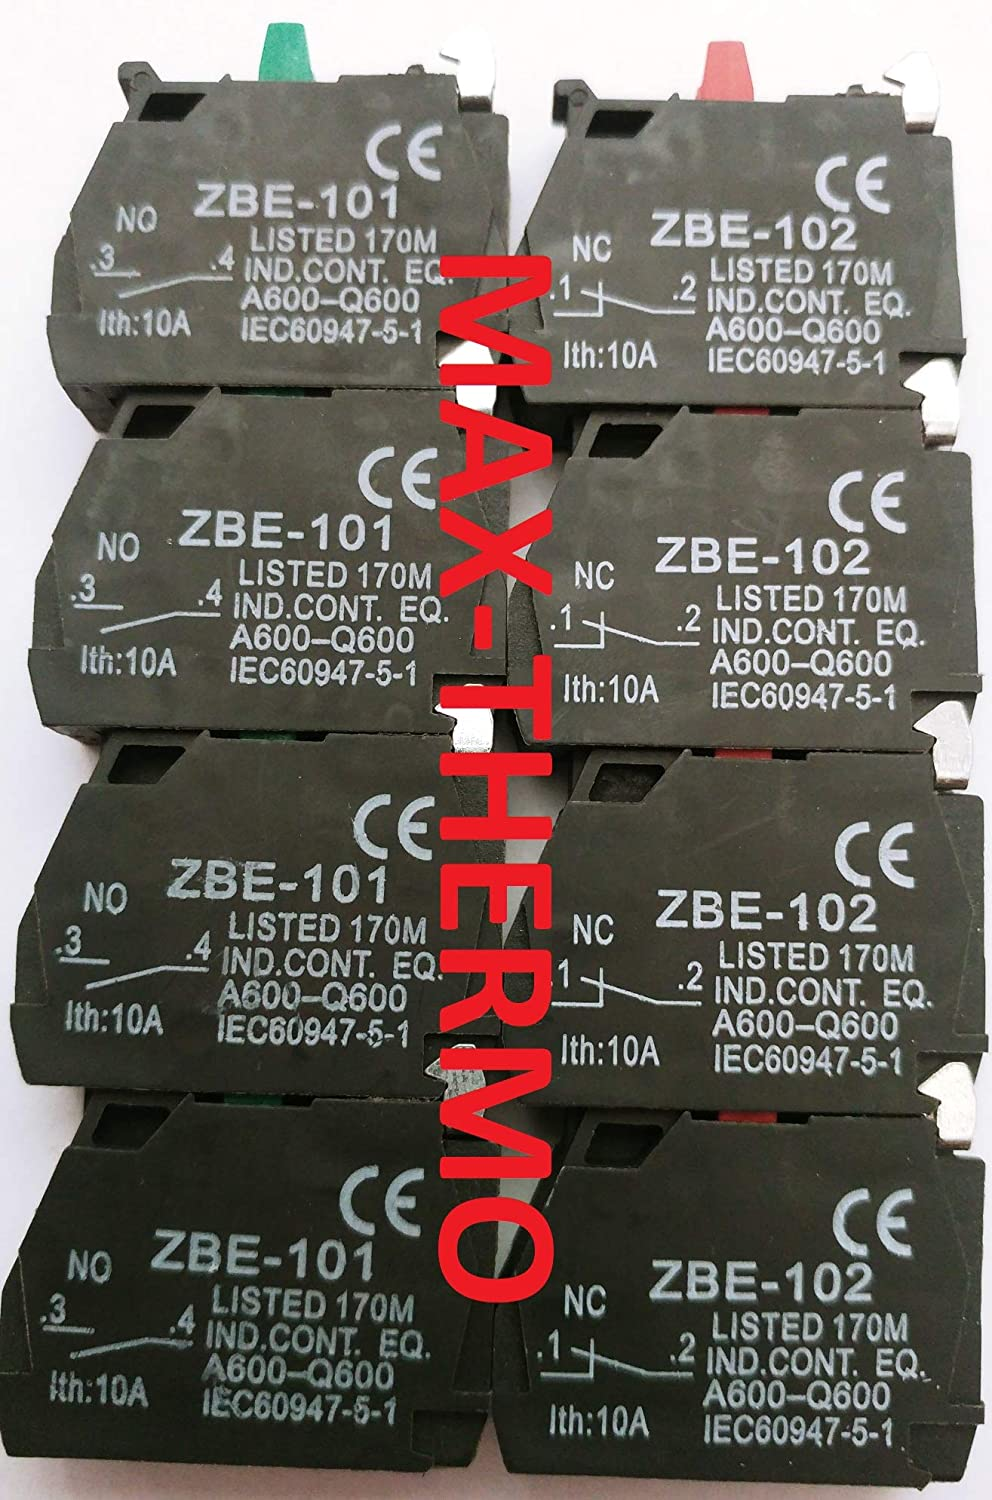 8 pcs. 4 of ZBE-102 + 4 of ZBE-101 FITS for TELEMECANIQUE Schneider Contact Block